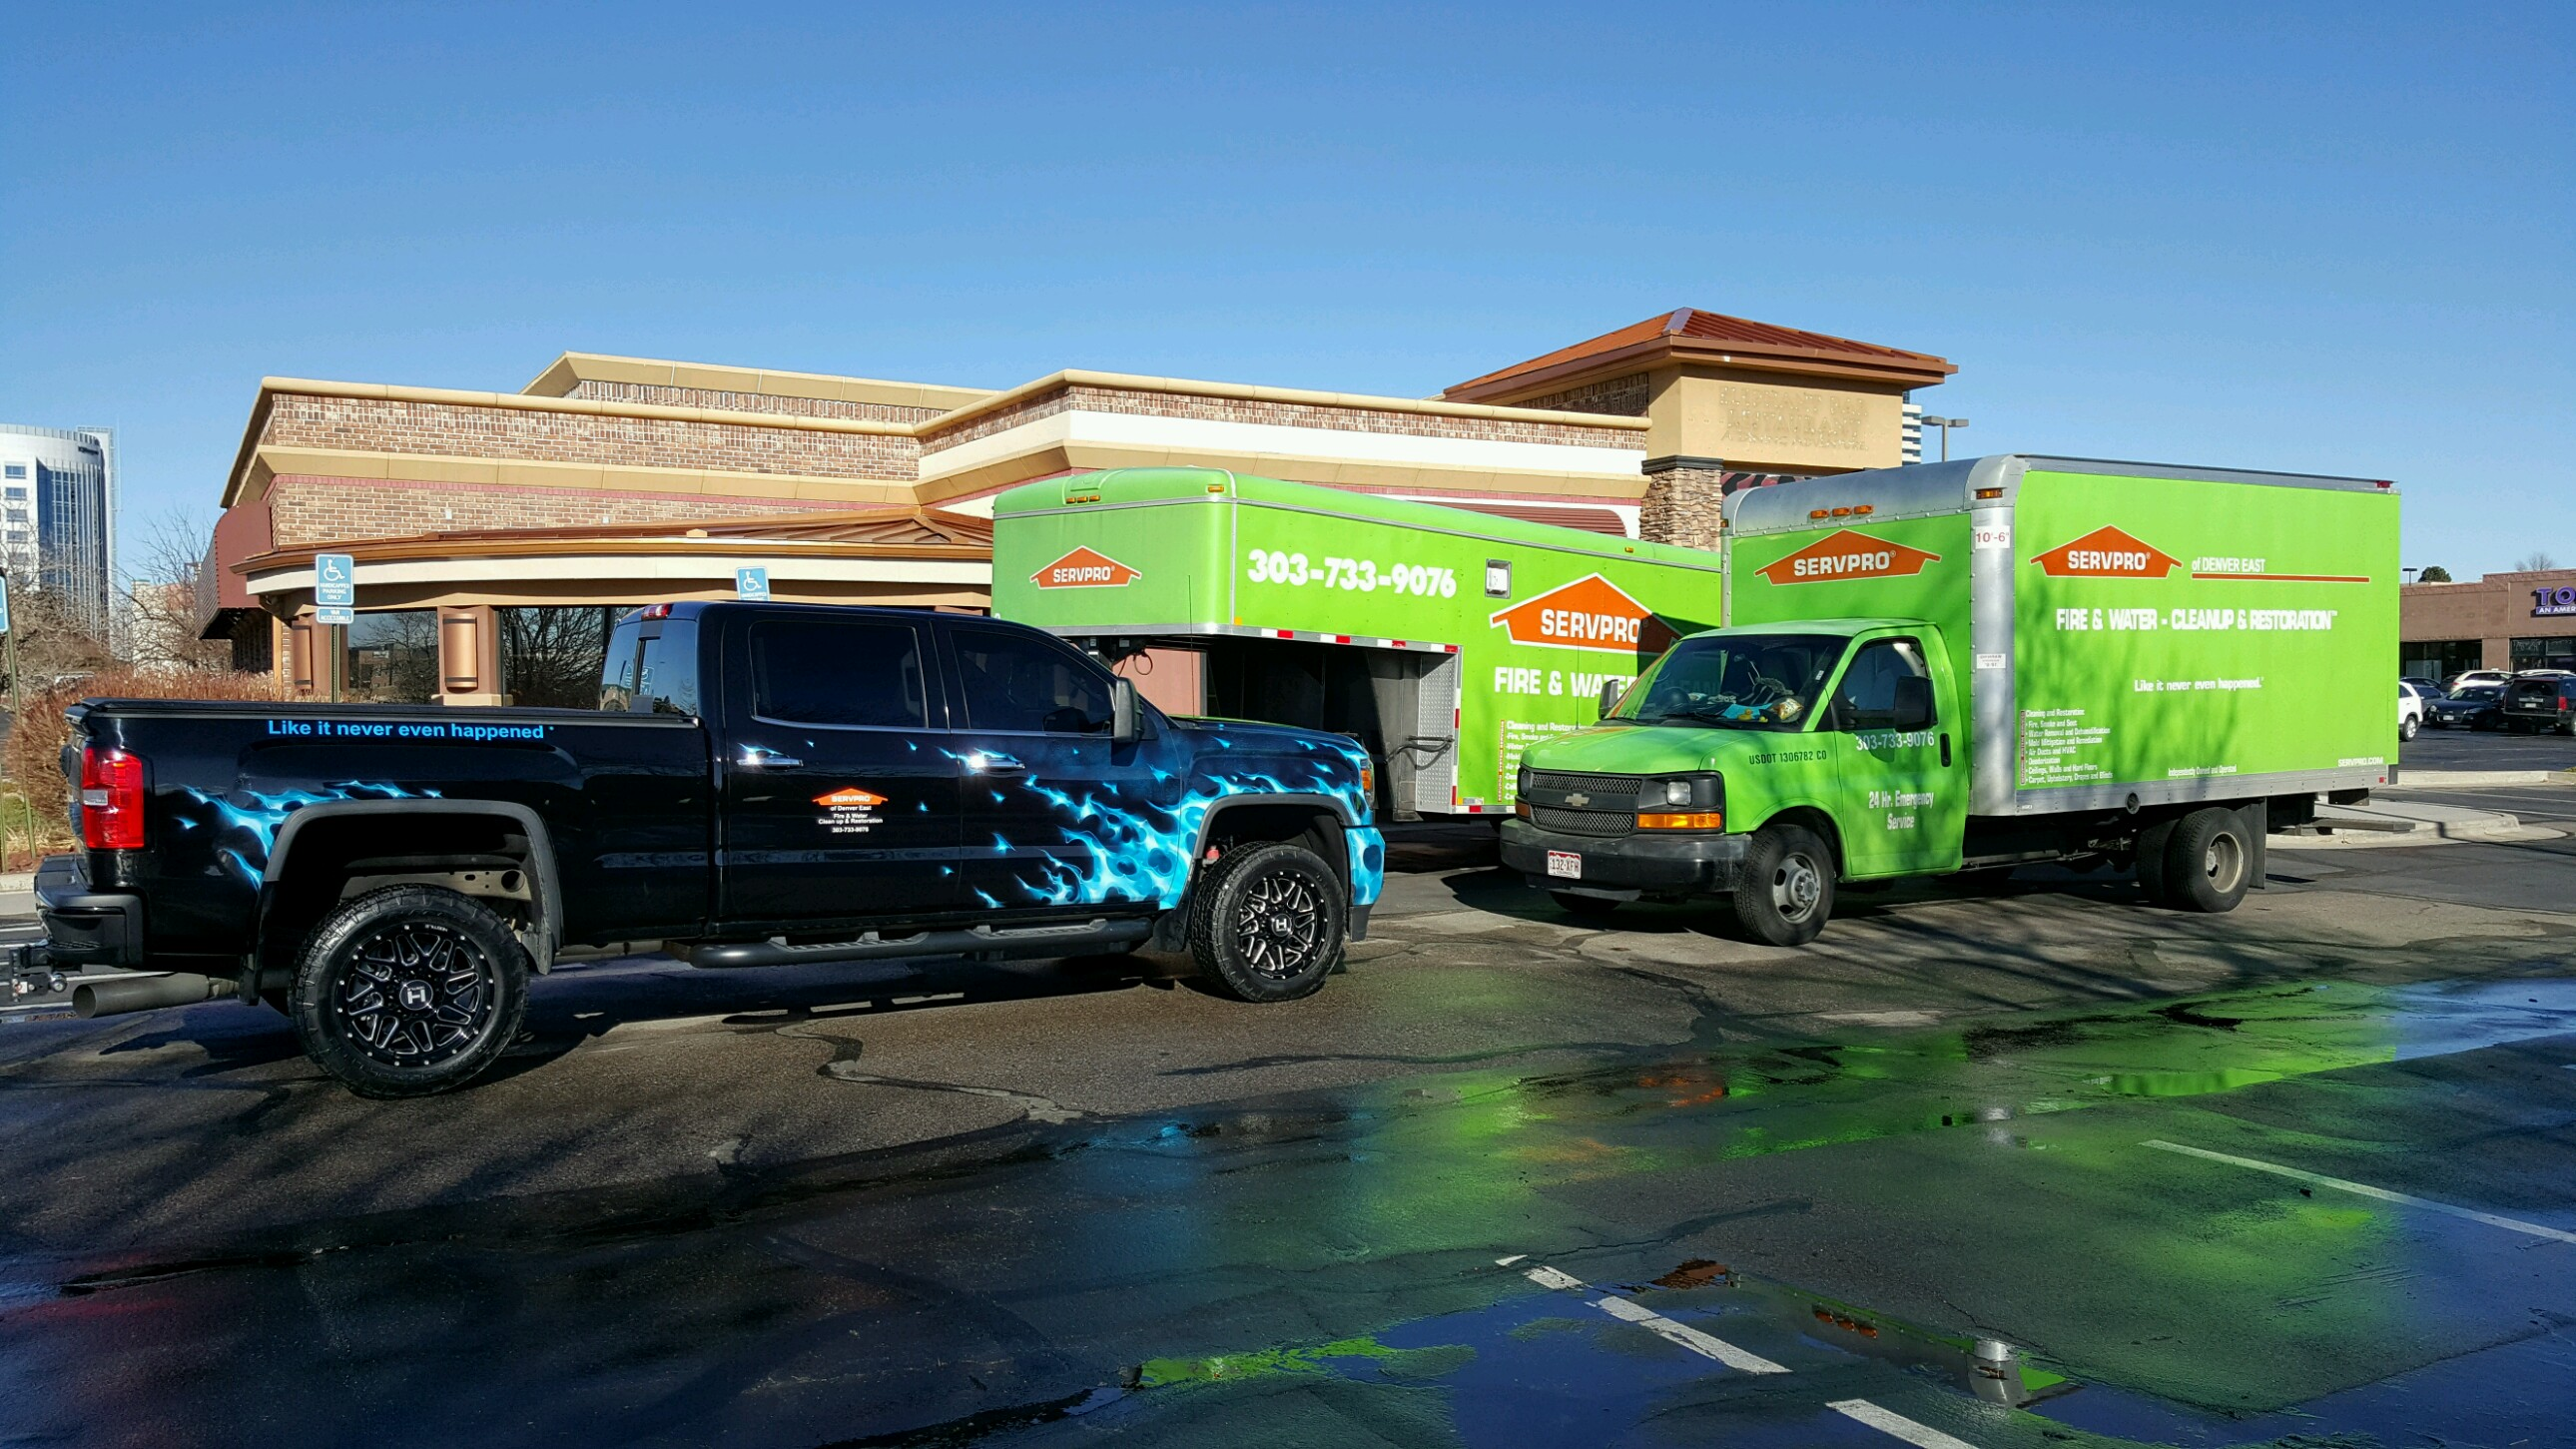 SERVPRO of Highlands Ranch/ NW Douglas County image 2